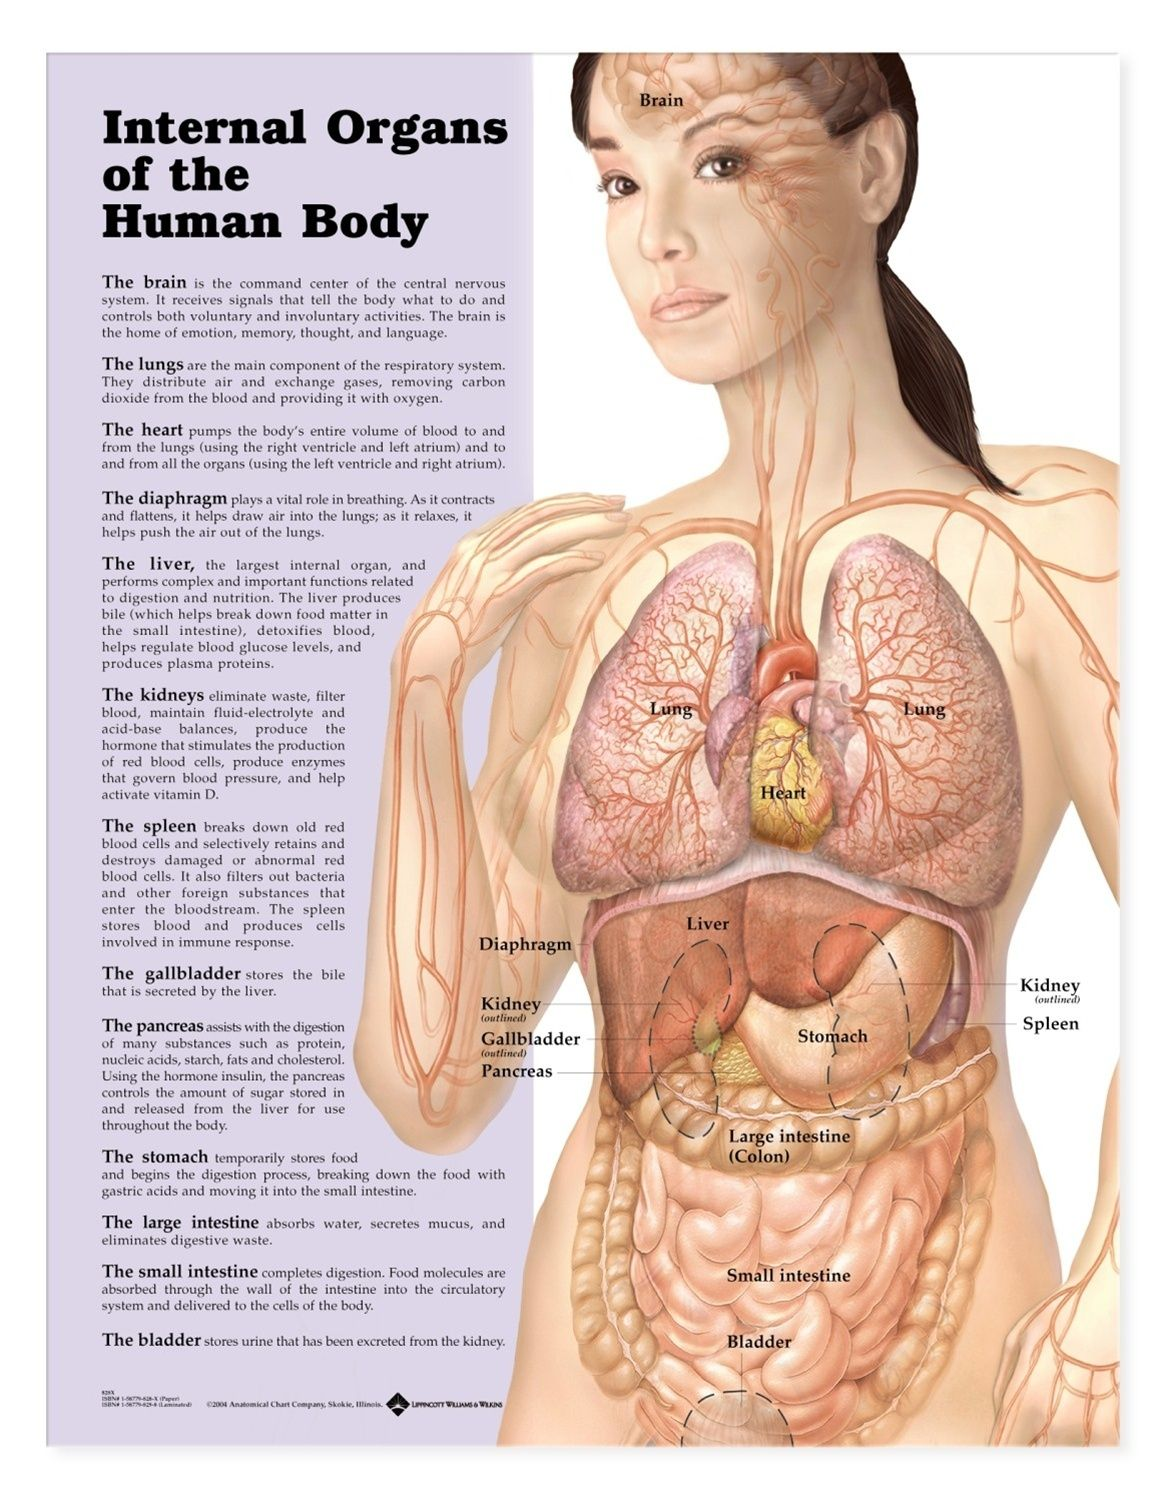 Female Human Anatomy Organs - See more about Female Human Anatomy ...